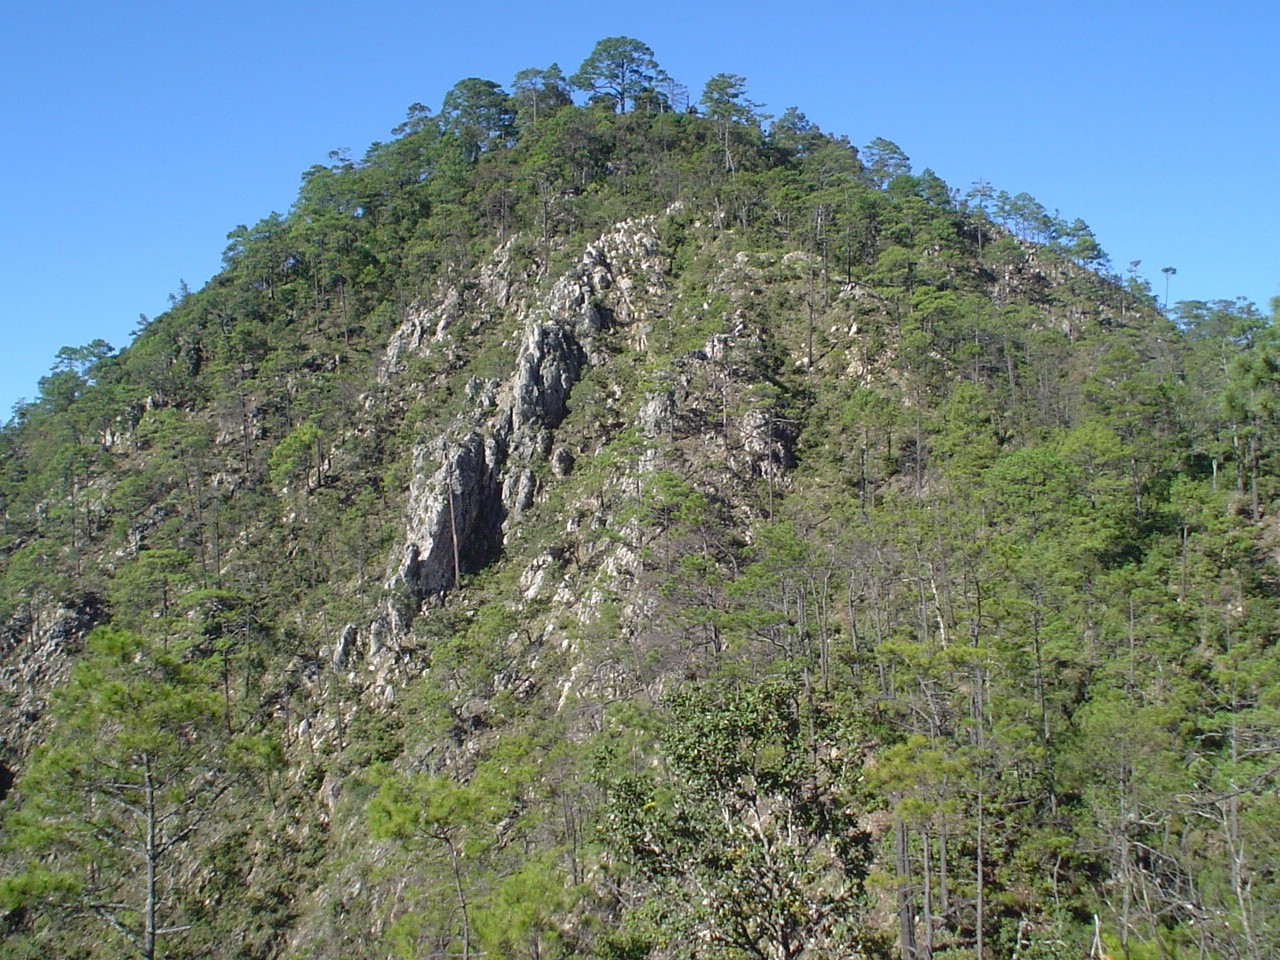 Rock outcrop at Pena Blanca